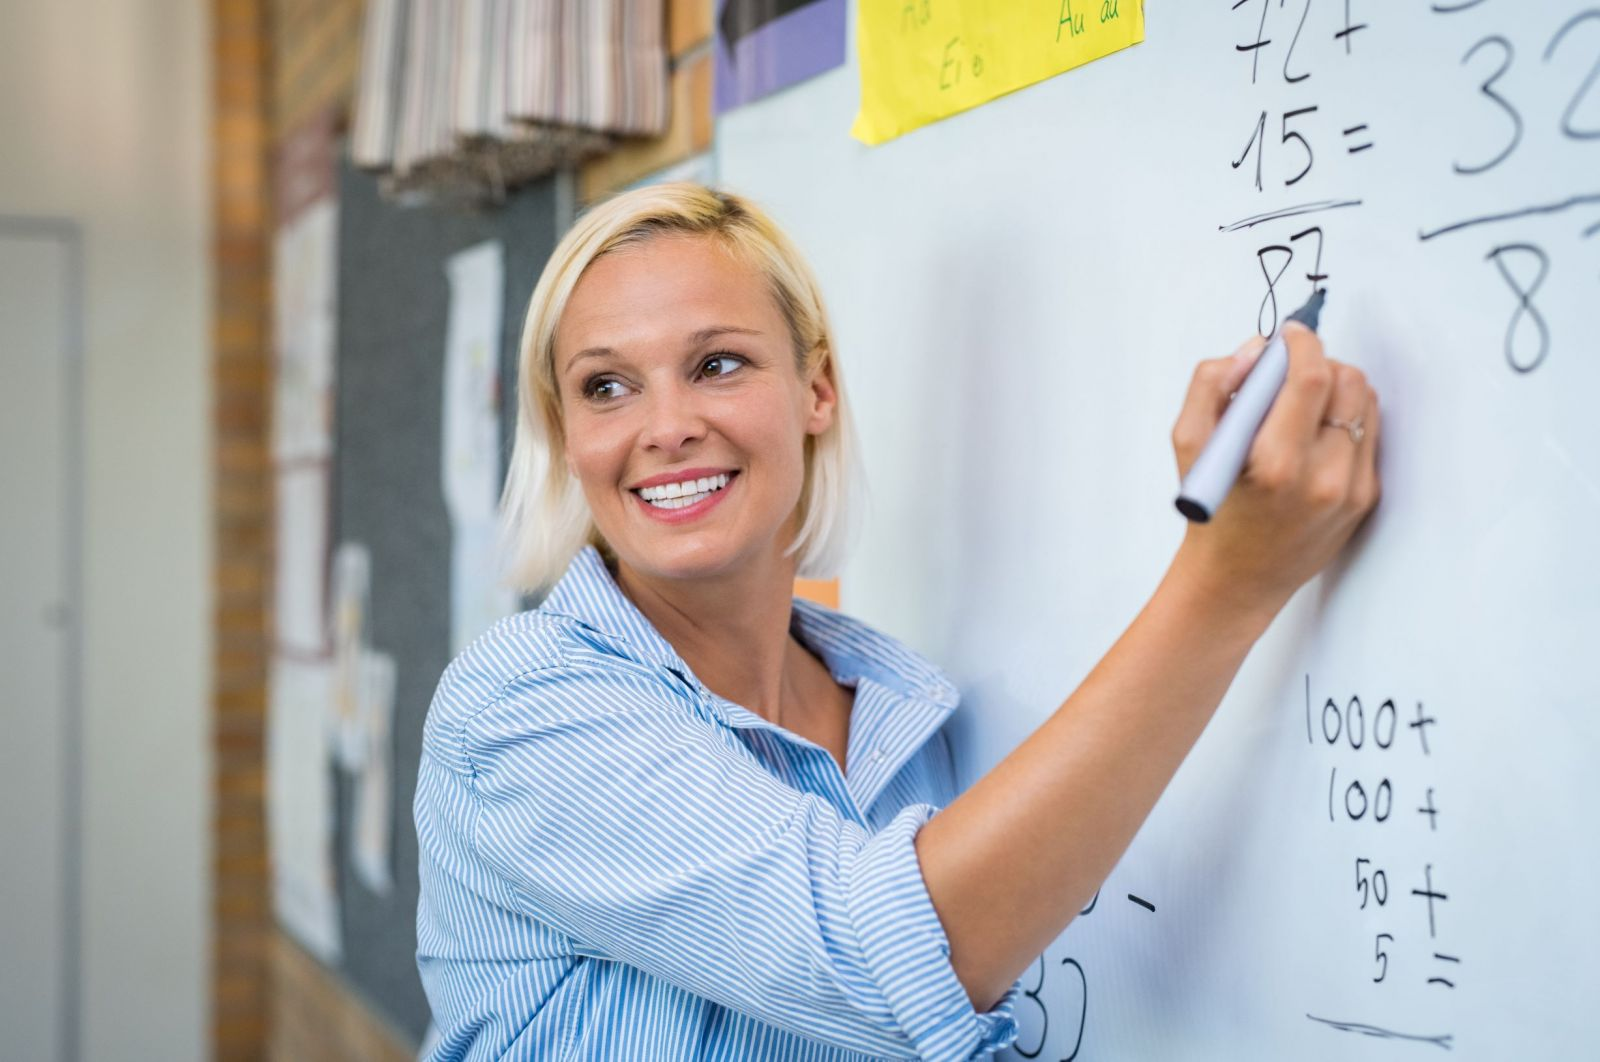 Teachers' Salaries in Ukraine to Increase by 30% This Year